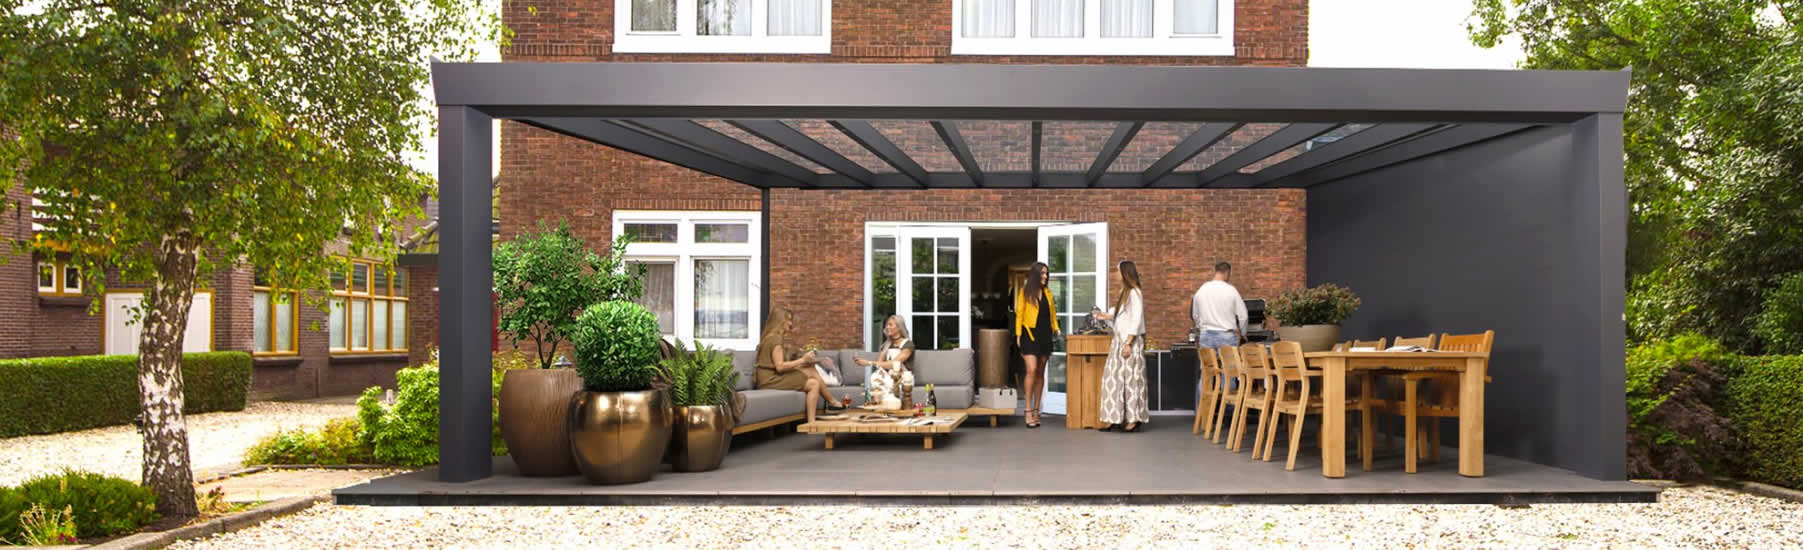 Verandas Ireland - RoomOutdoors